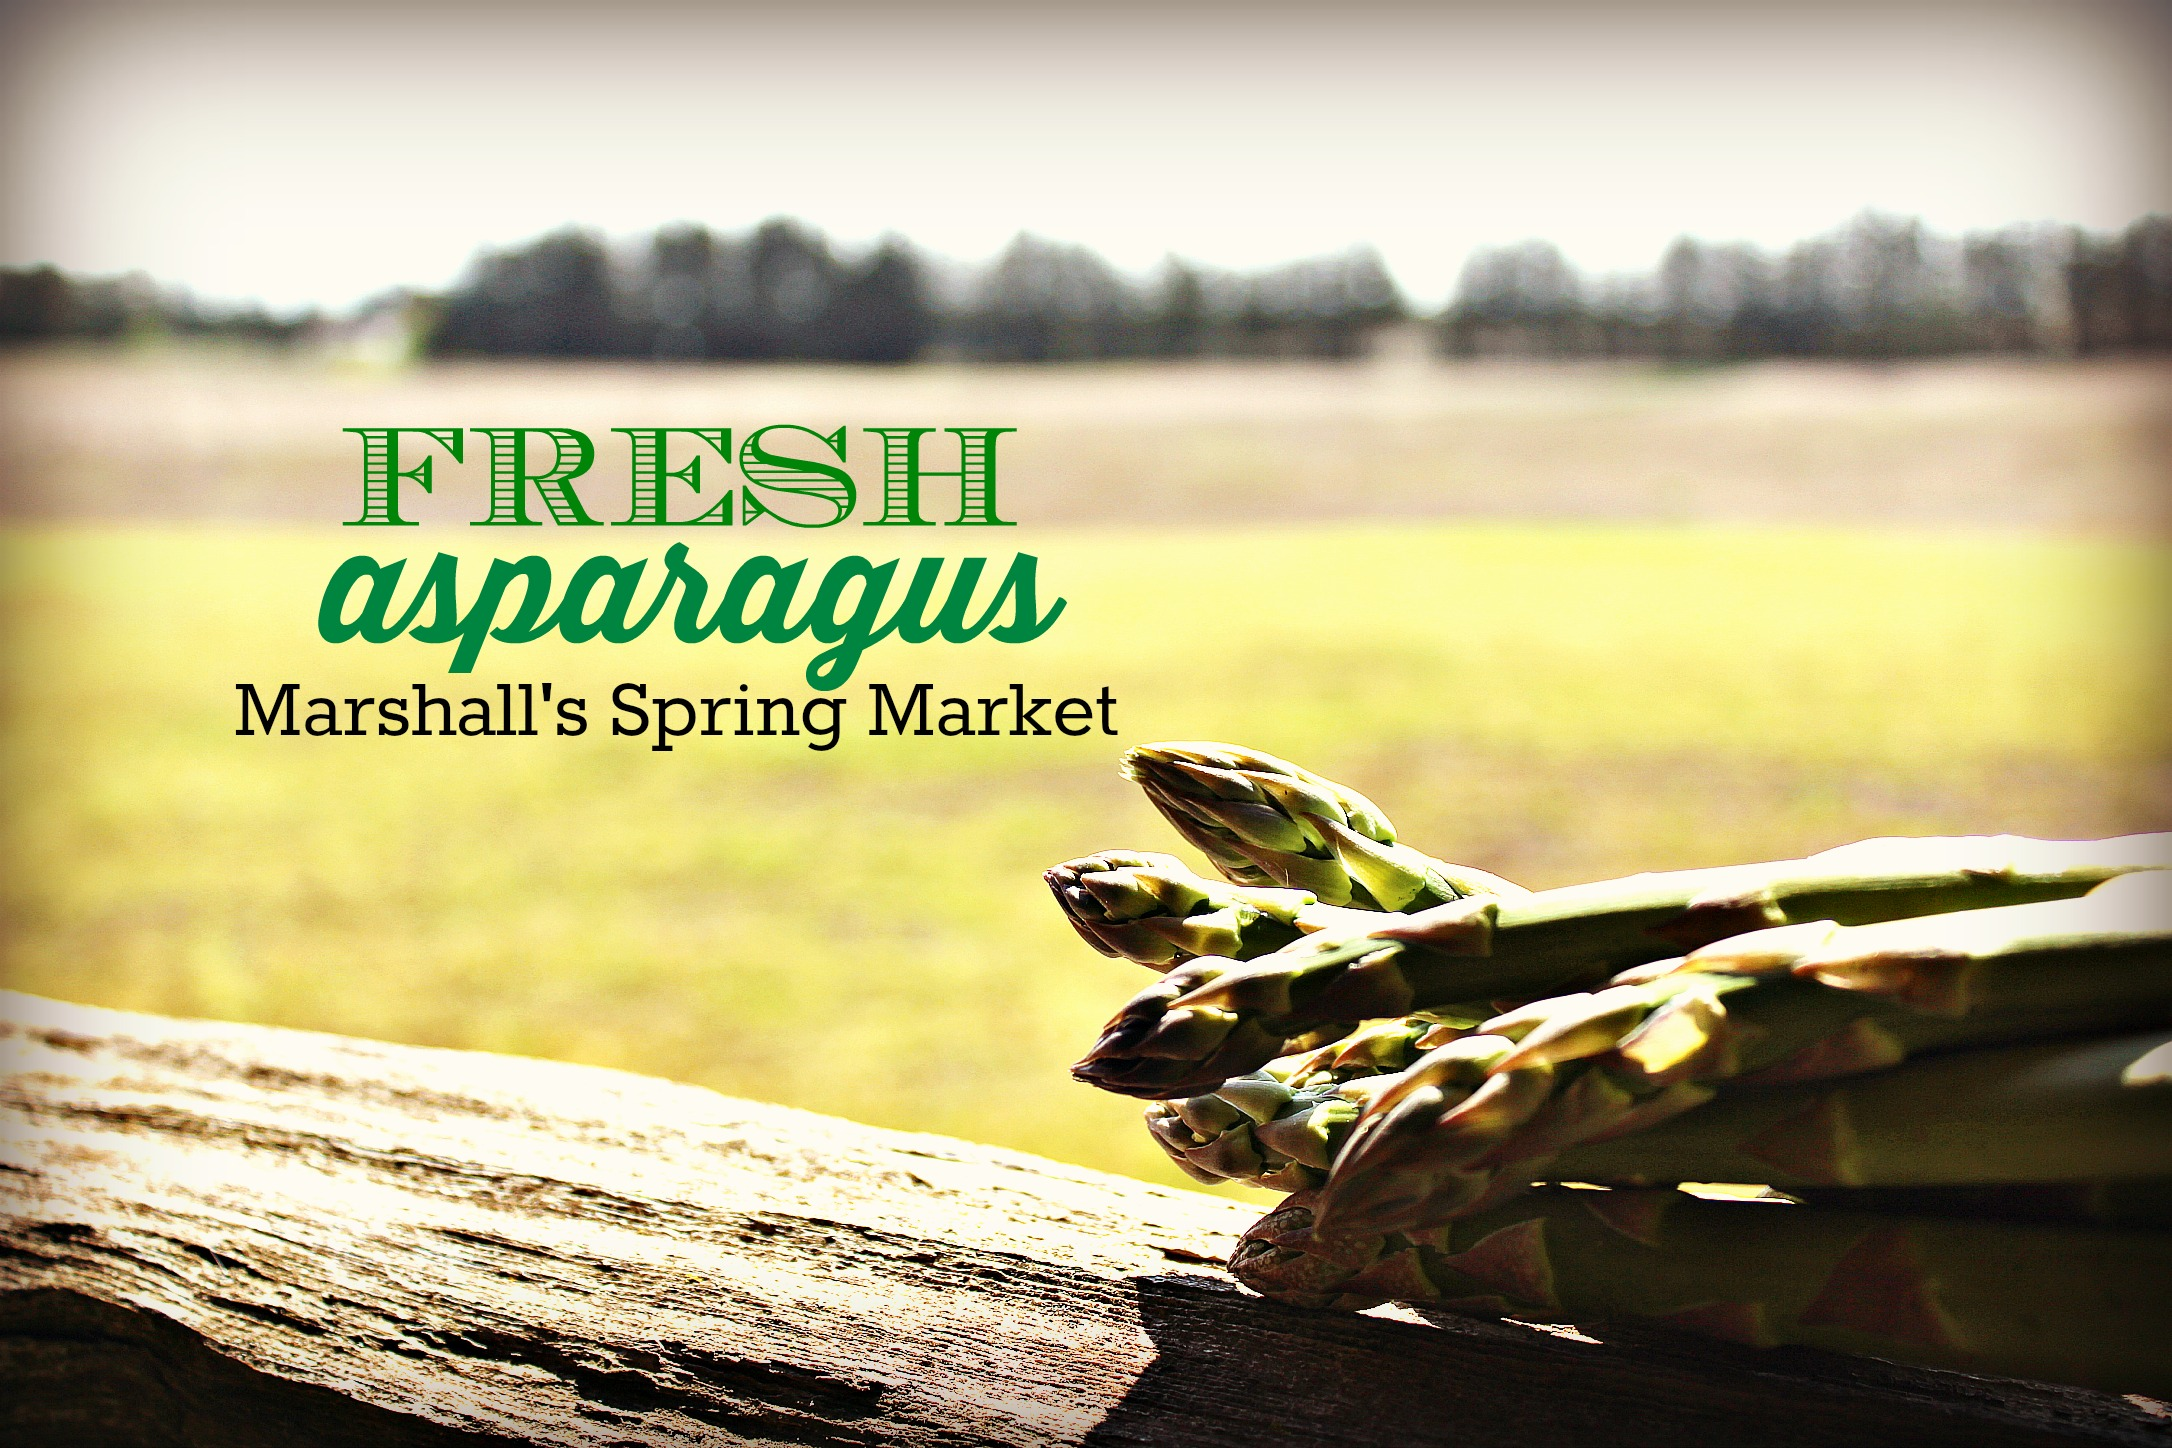 Asparagus, how do you like yours?